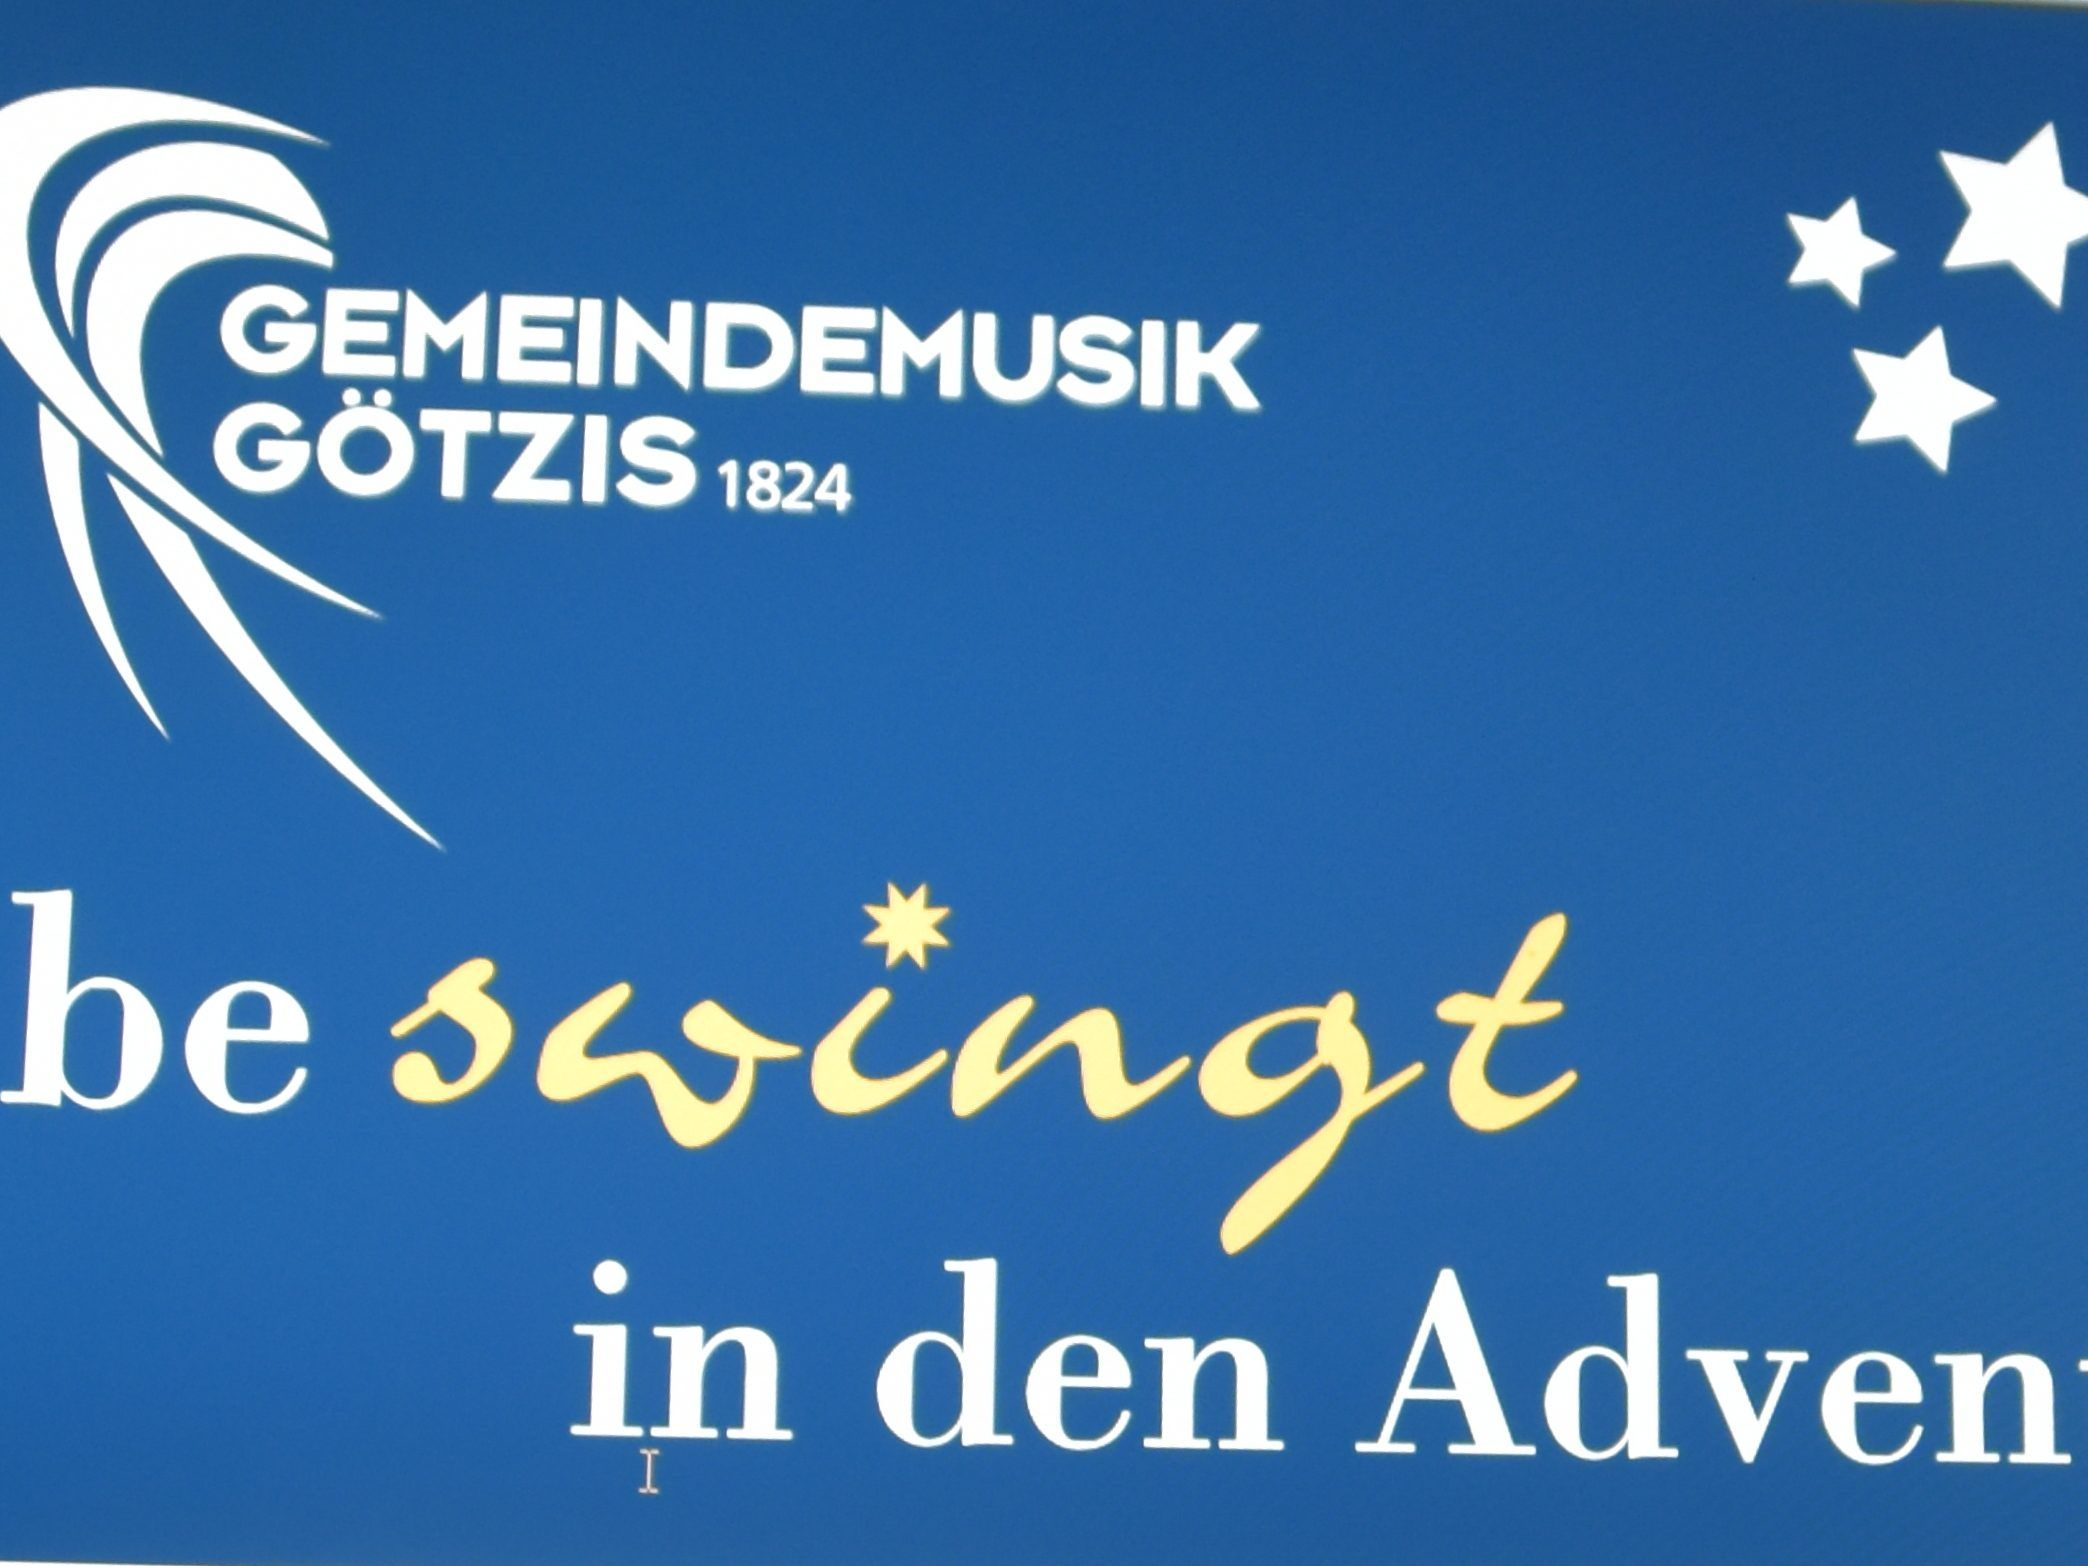 be-swingt in den Advent